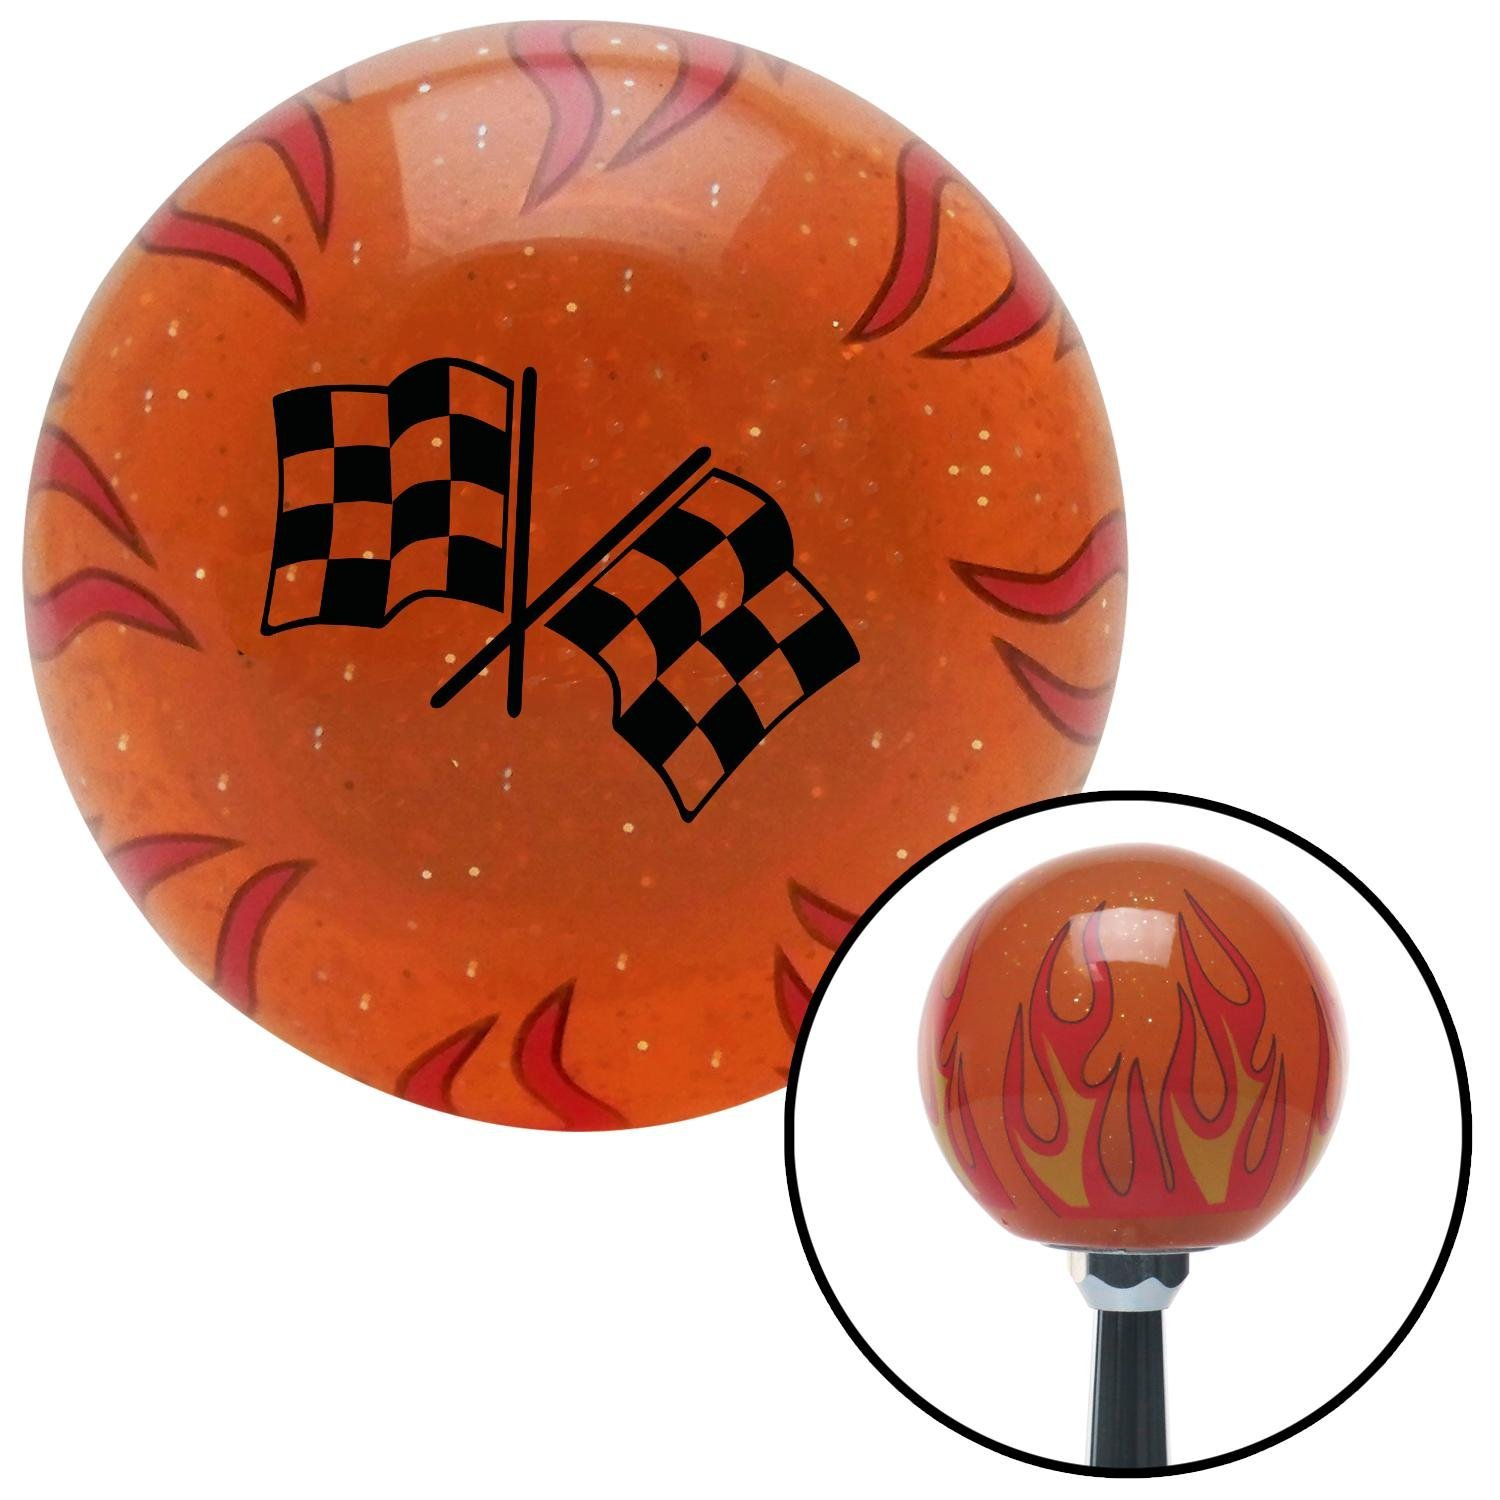 American Shifter 255076 Orange Flame Metal Flake Shift Knob with M16 x 1.5 Insert Black Checkered Flags